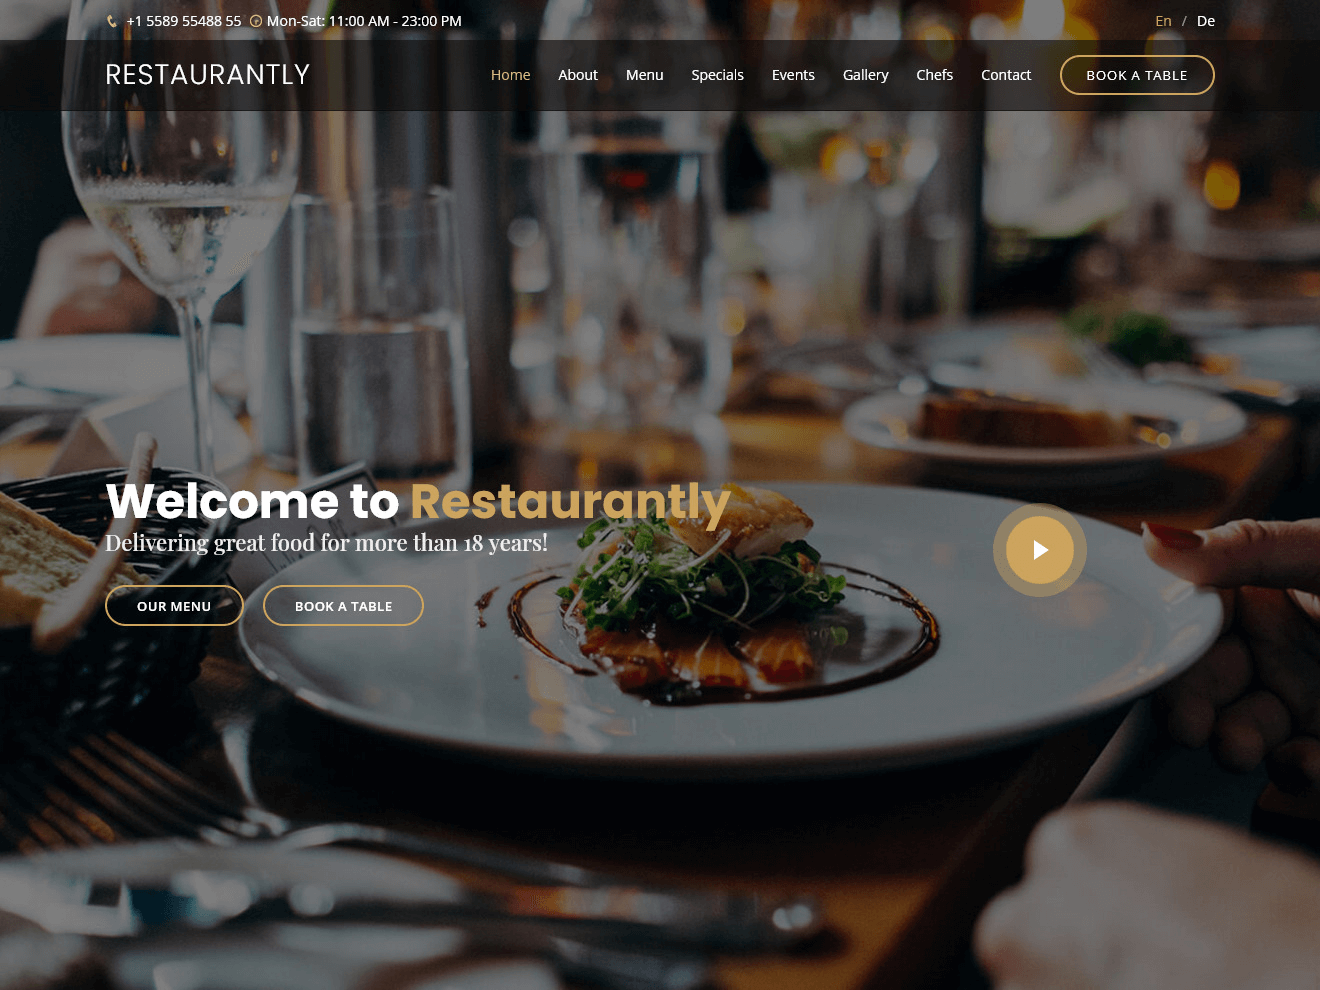 Restaurantly - Restaurant Website Template